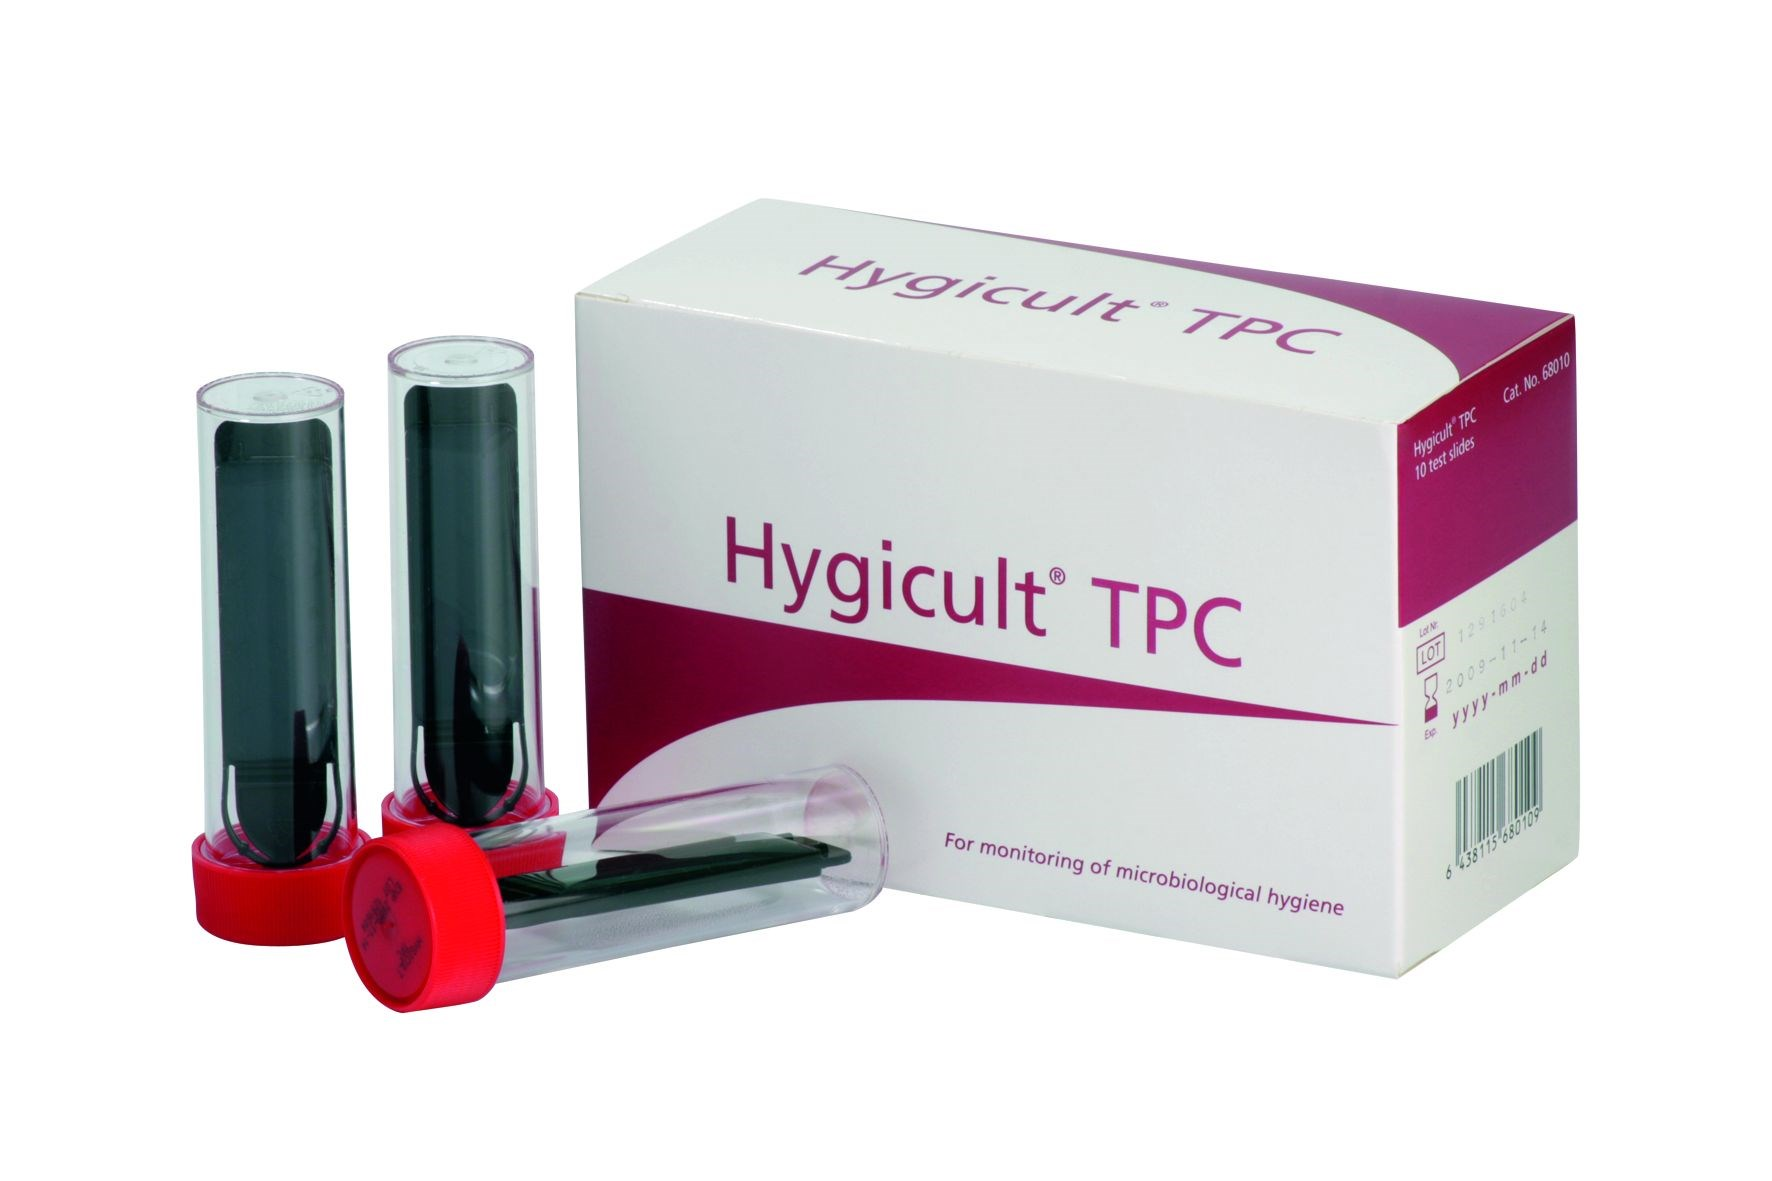 Hygicult_TPC_Package_and_Product_cmyk